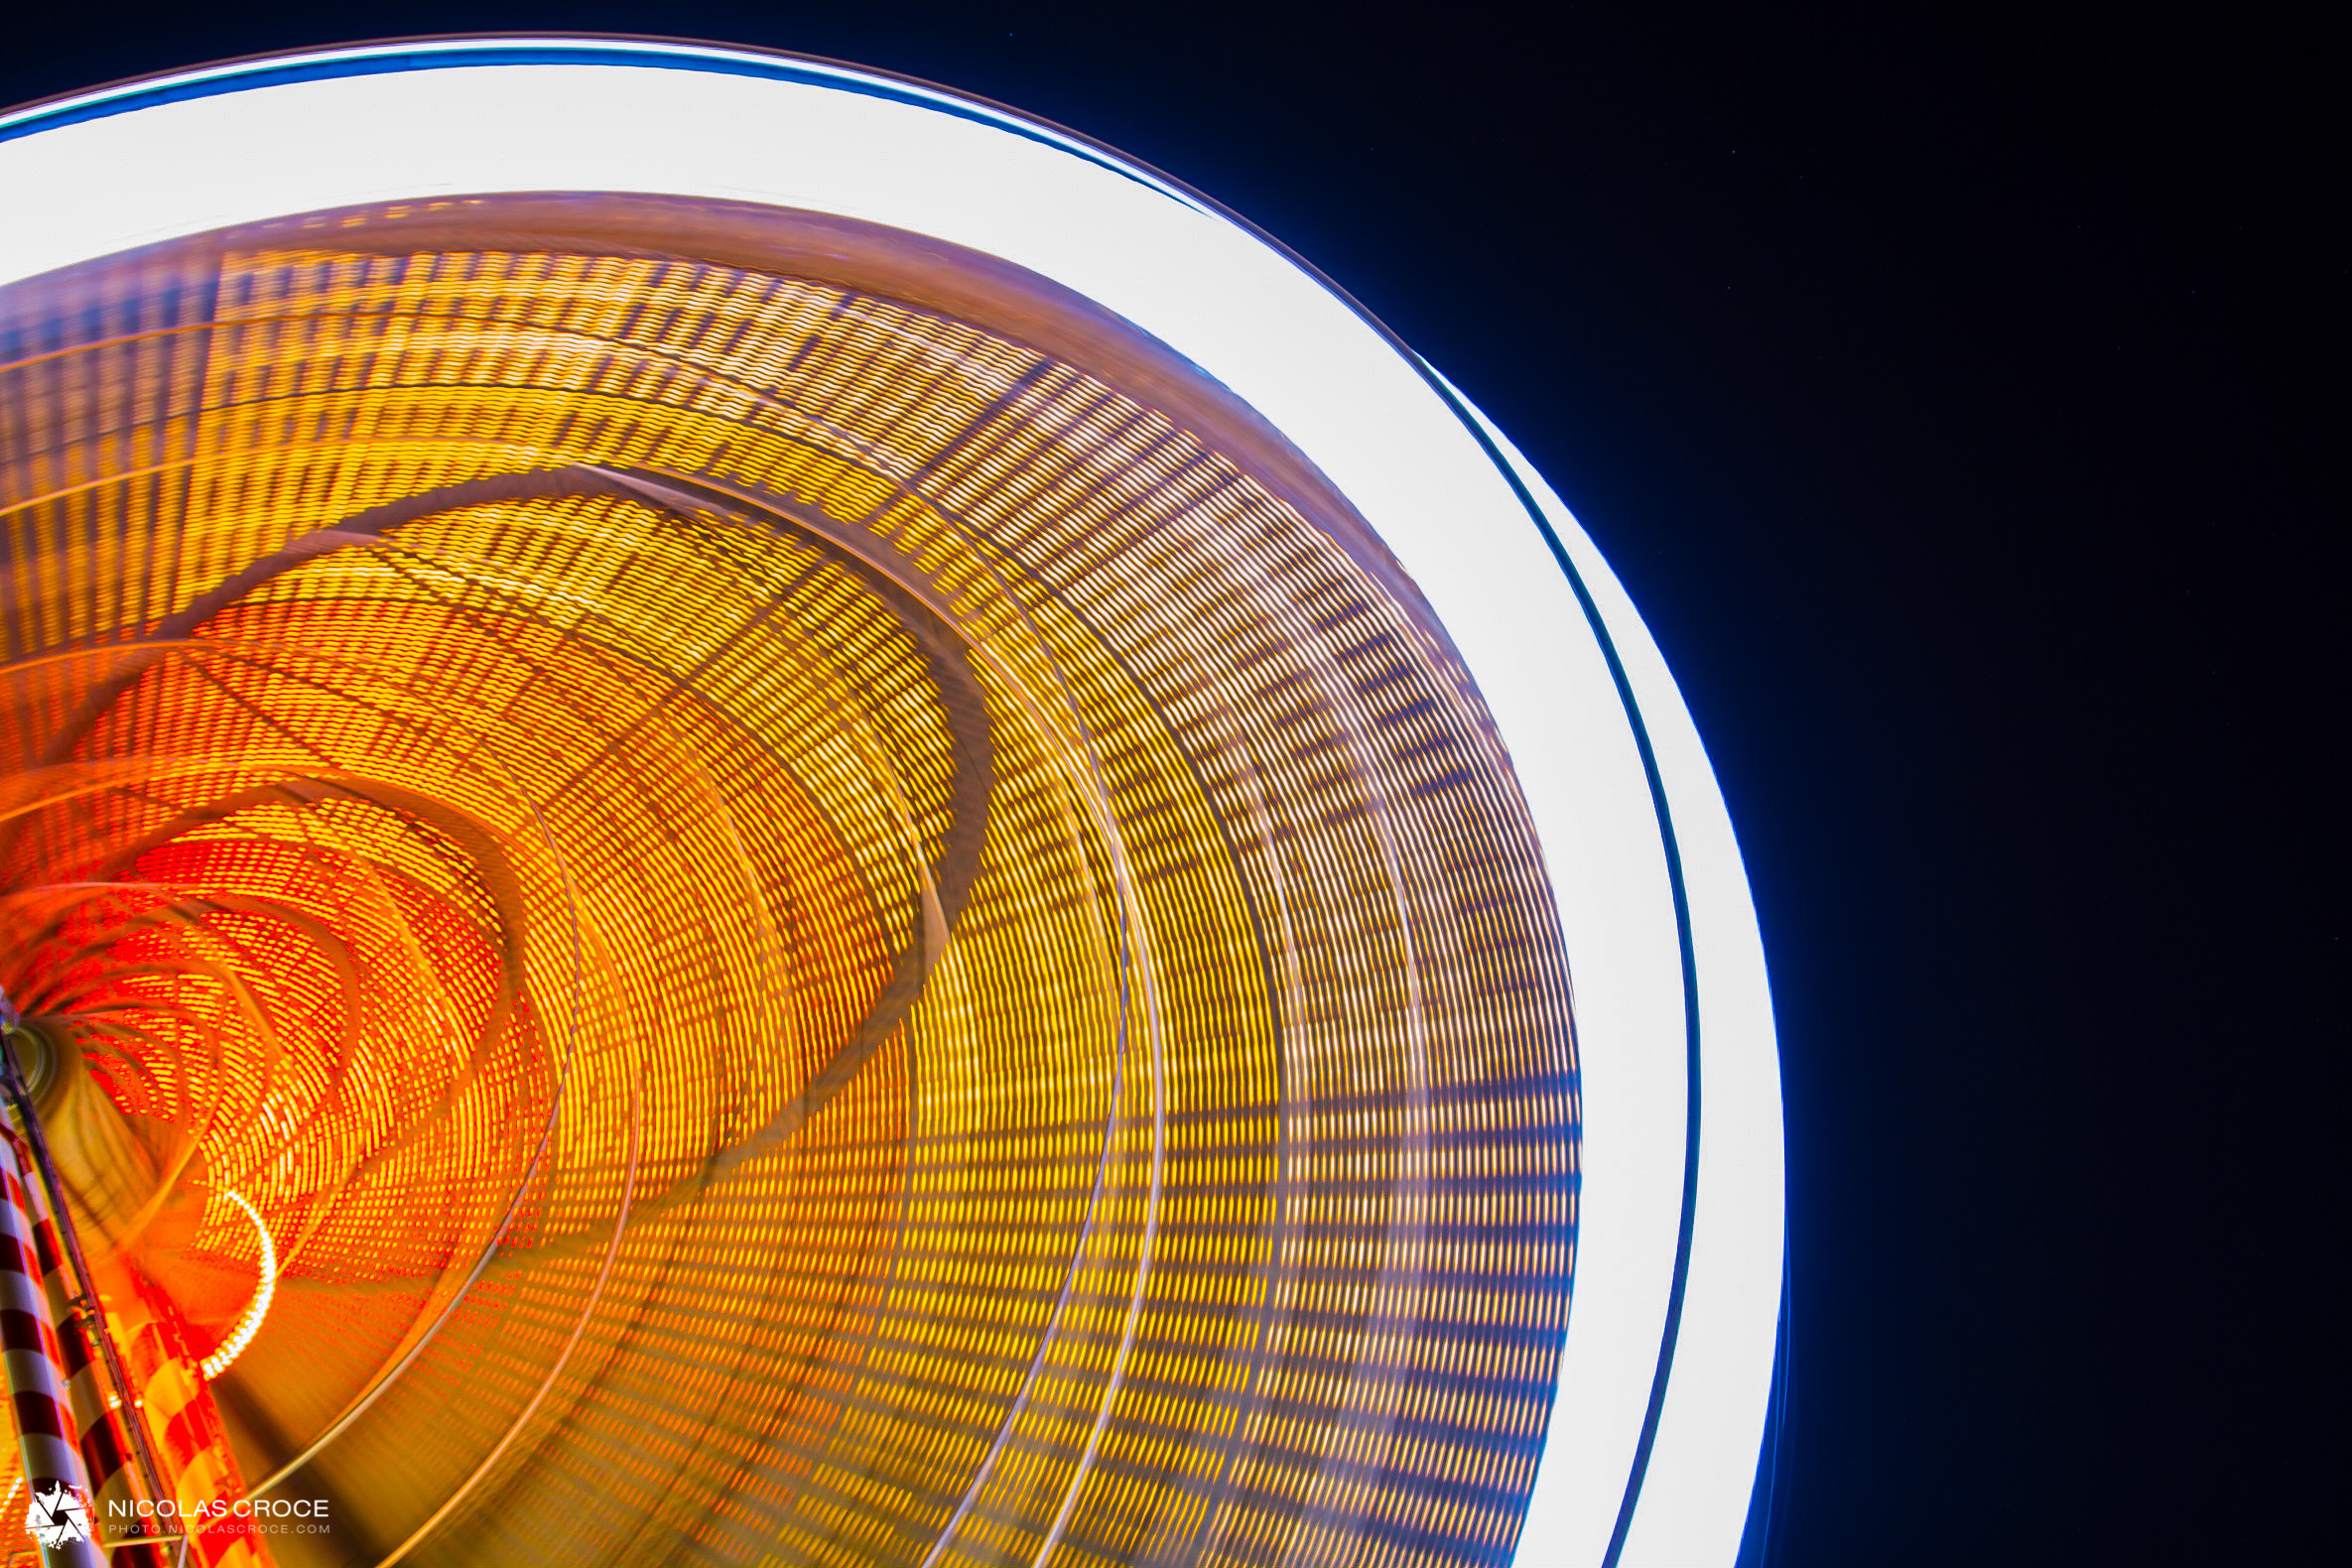 Ferris wheel in toulouse, long exposure